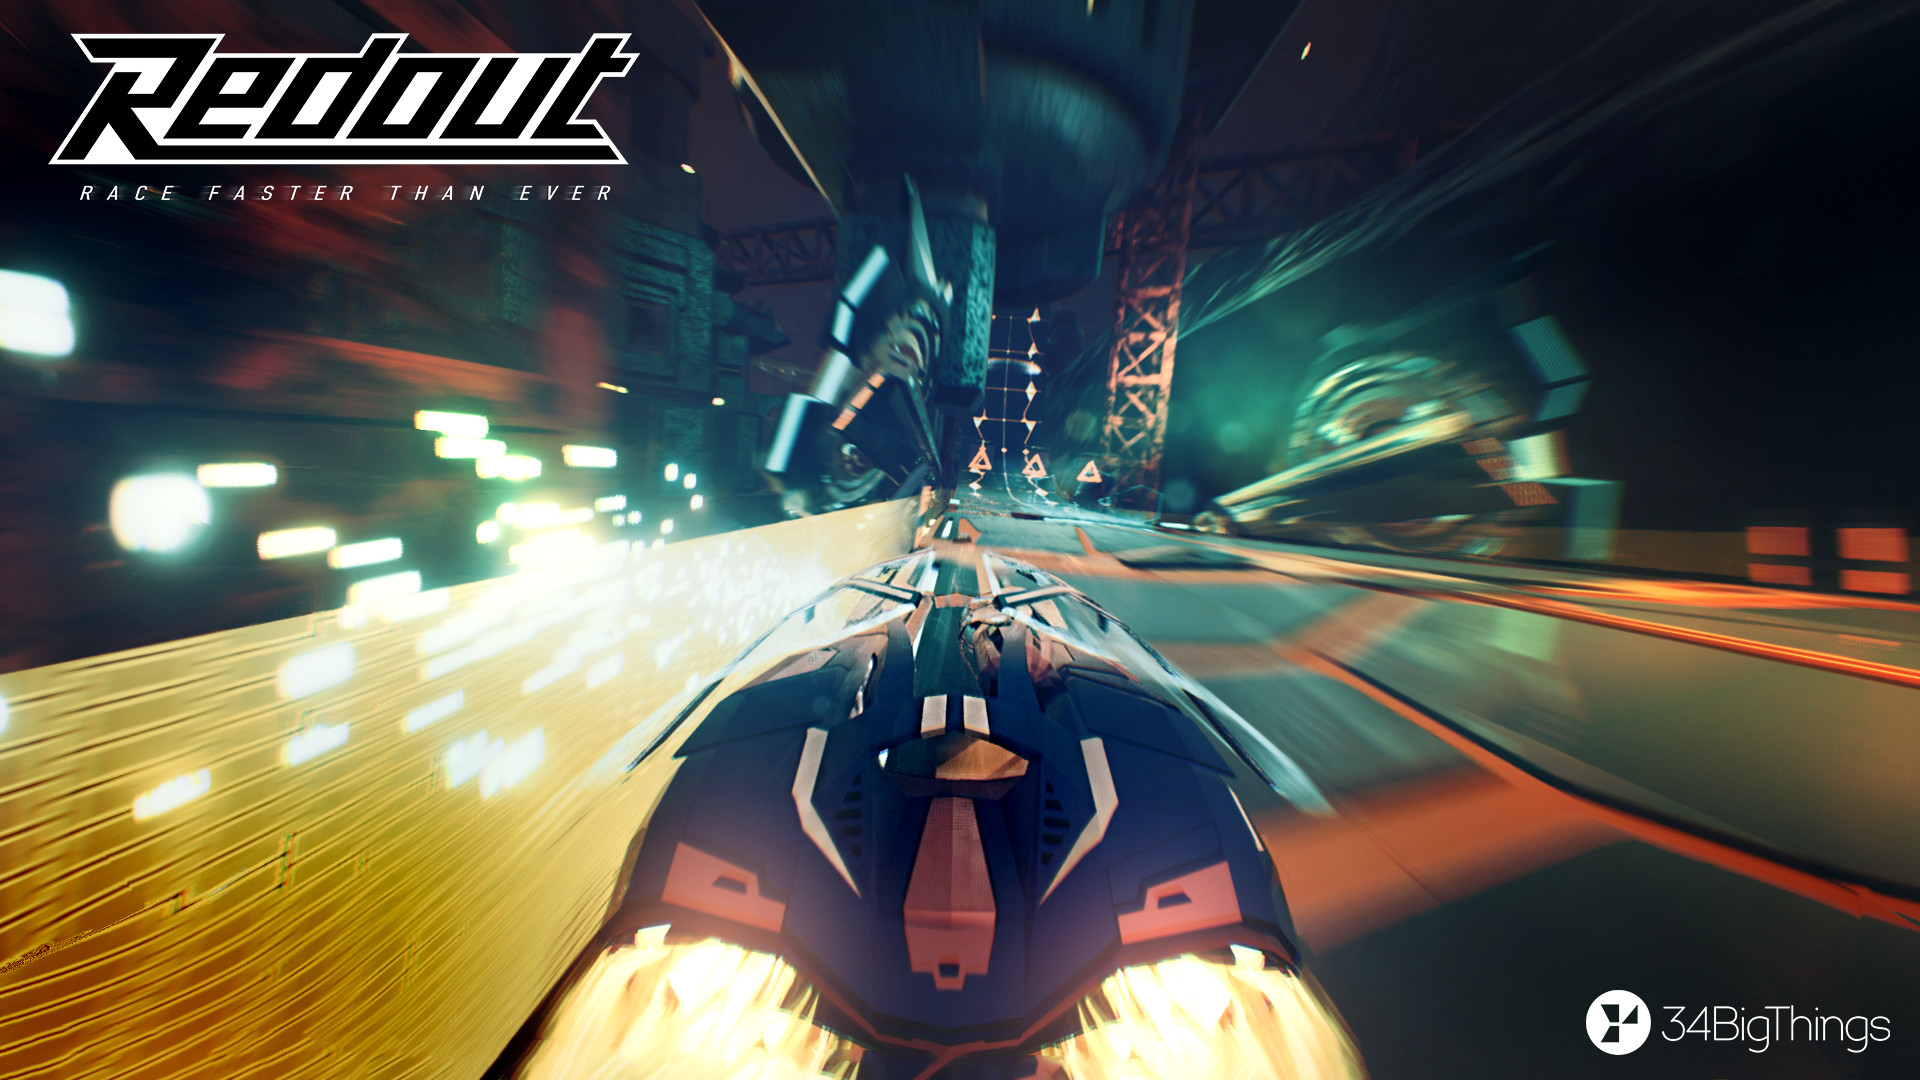 Redout Download For Free